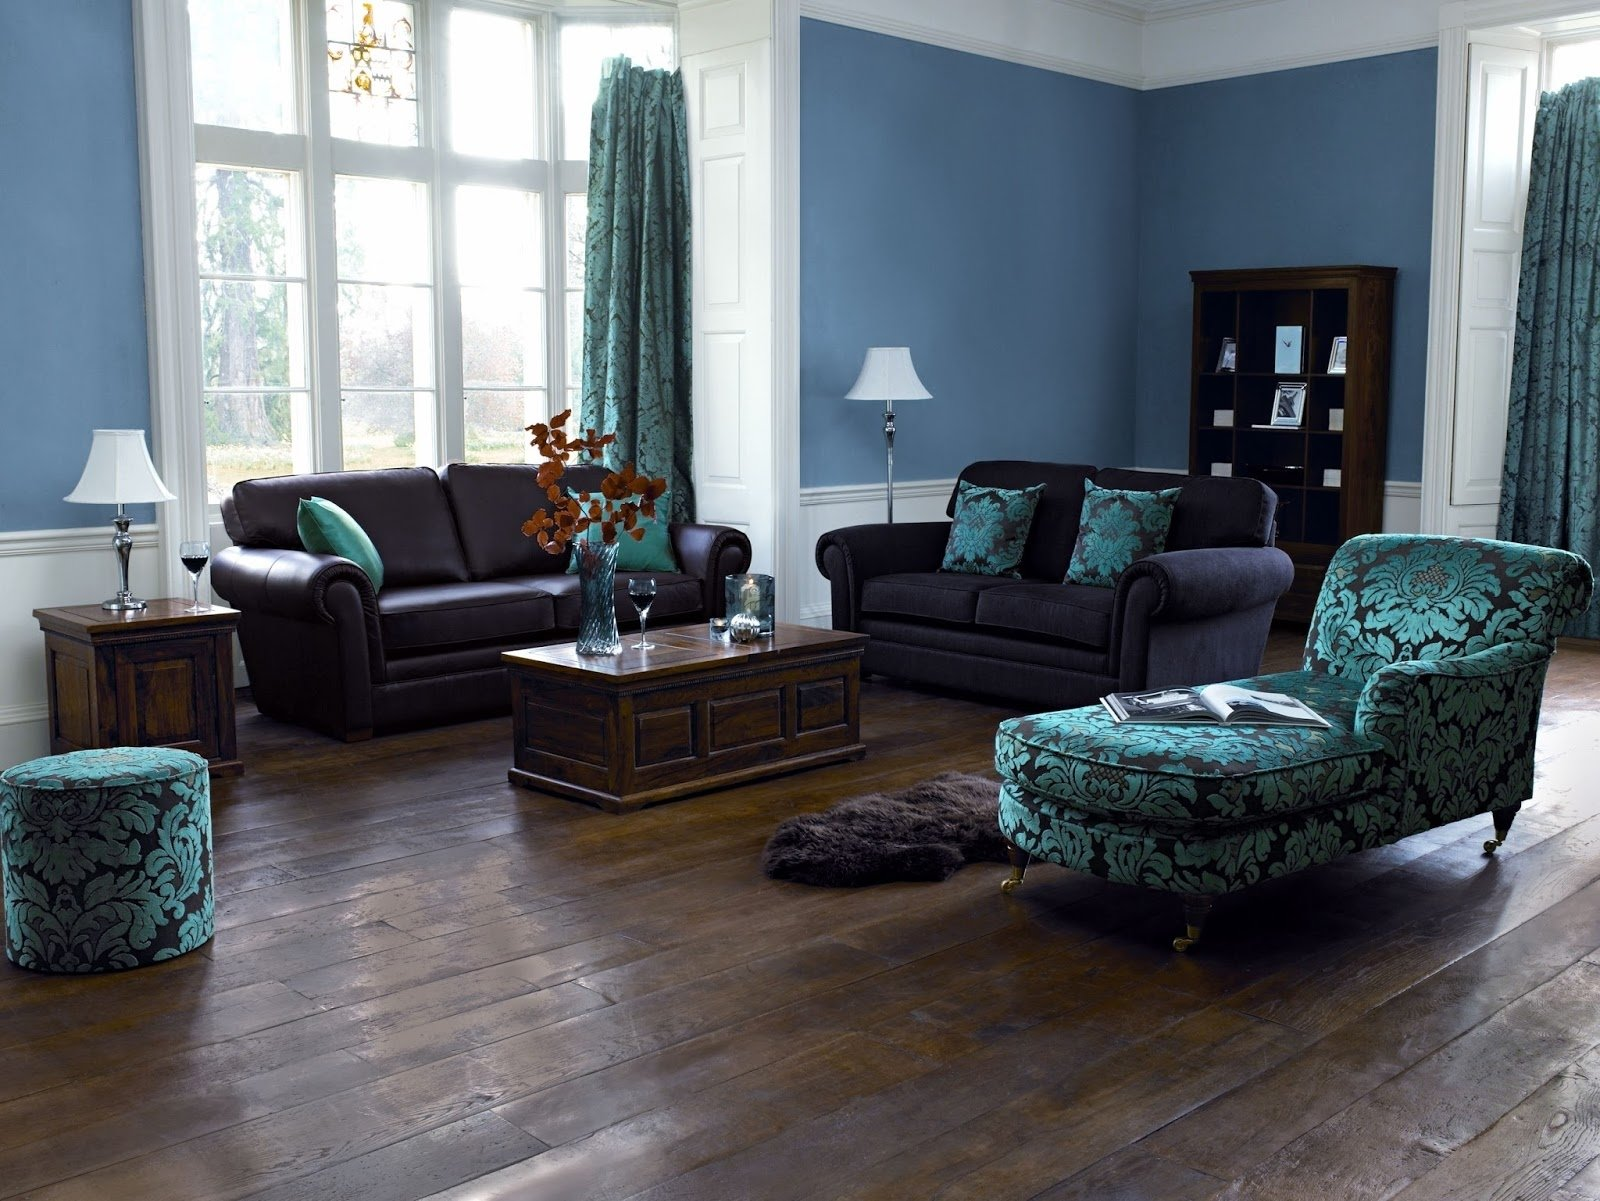 10 Attractive Blue And Brown Living Room Ideas amazing of extraordinary blue and brown living room decor 991